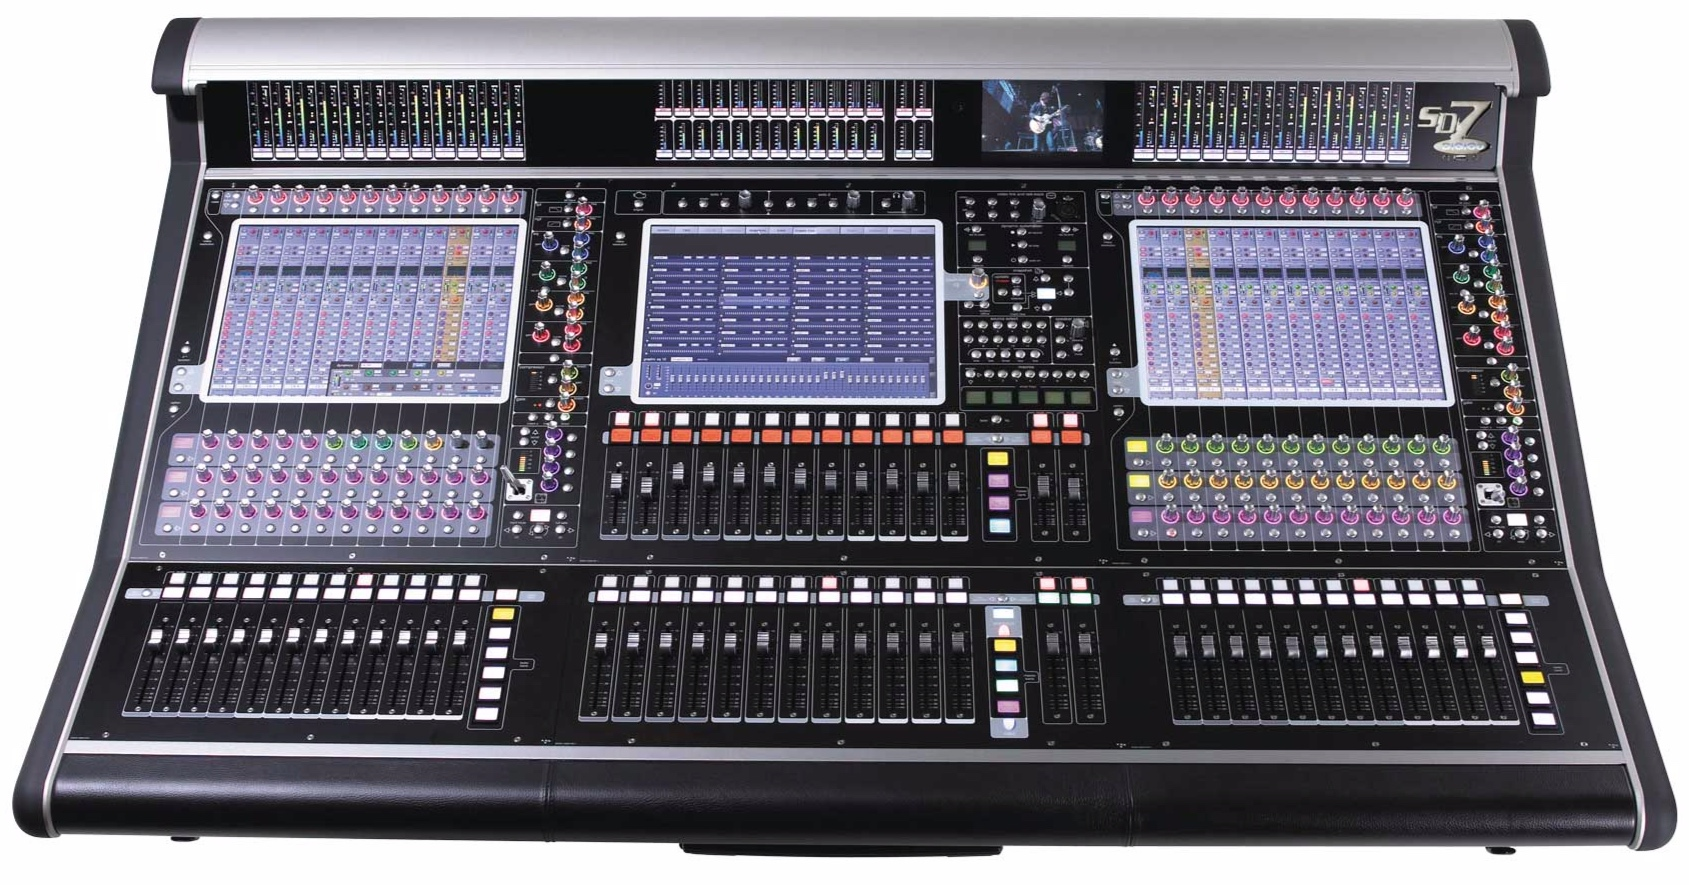 DiGiCo SD7T mixing desk